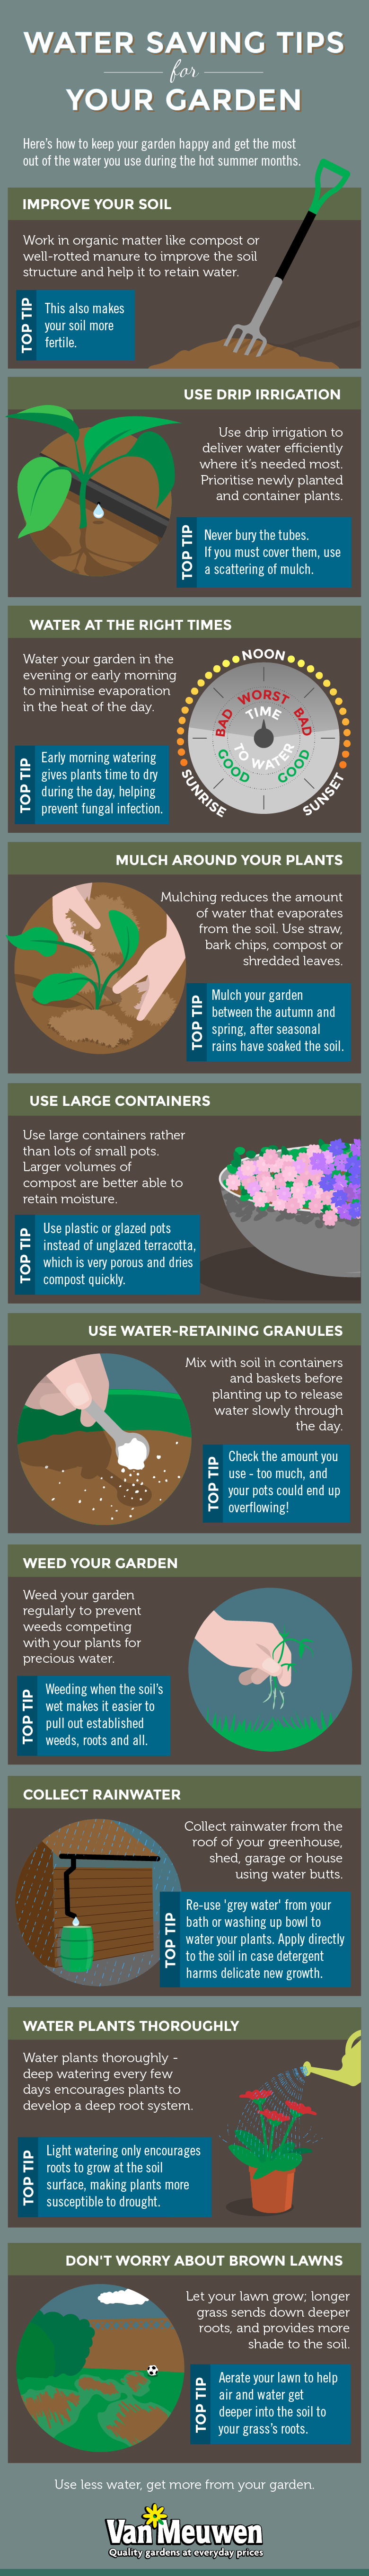 water saving tips infographic from van meuwen